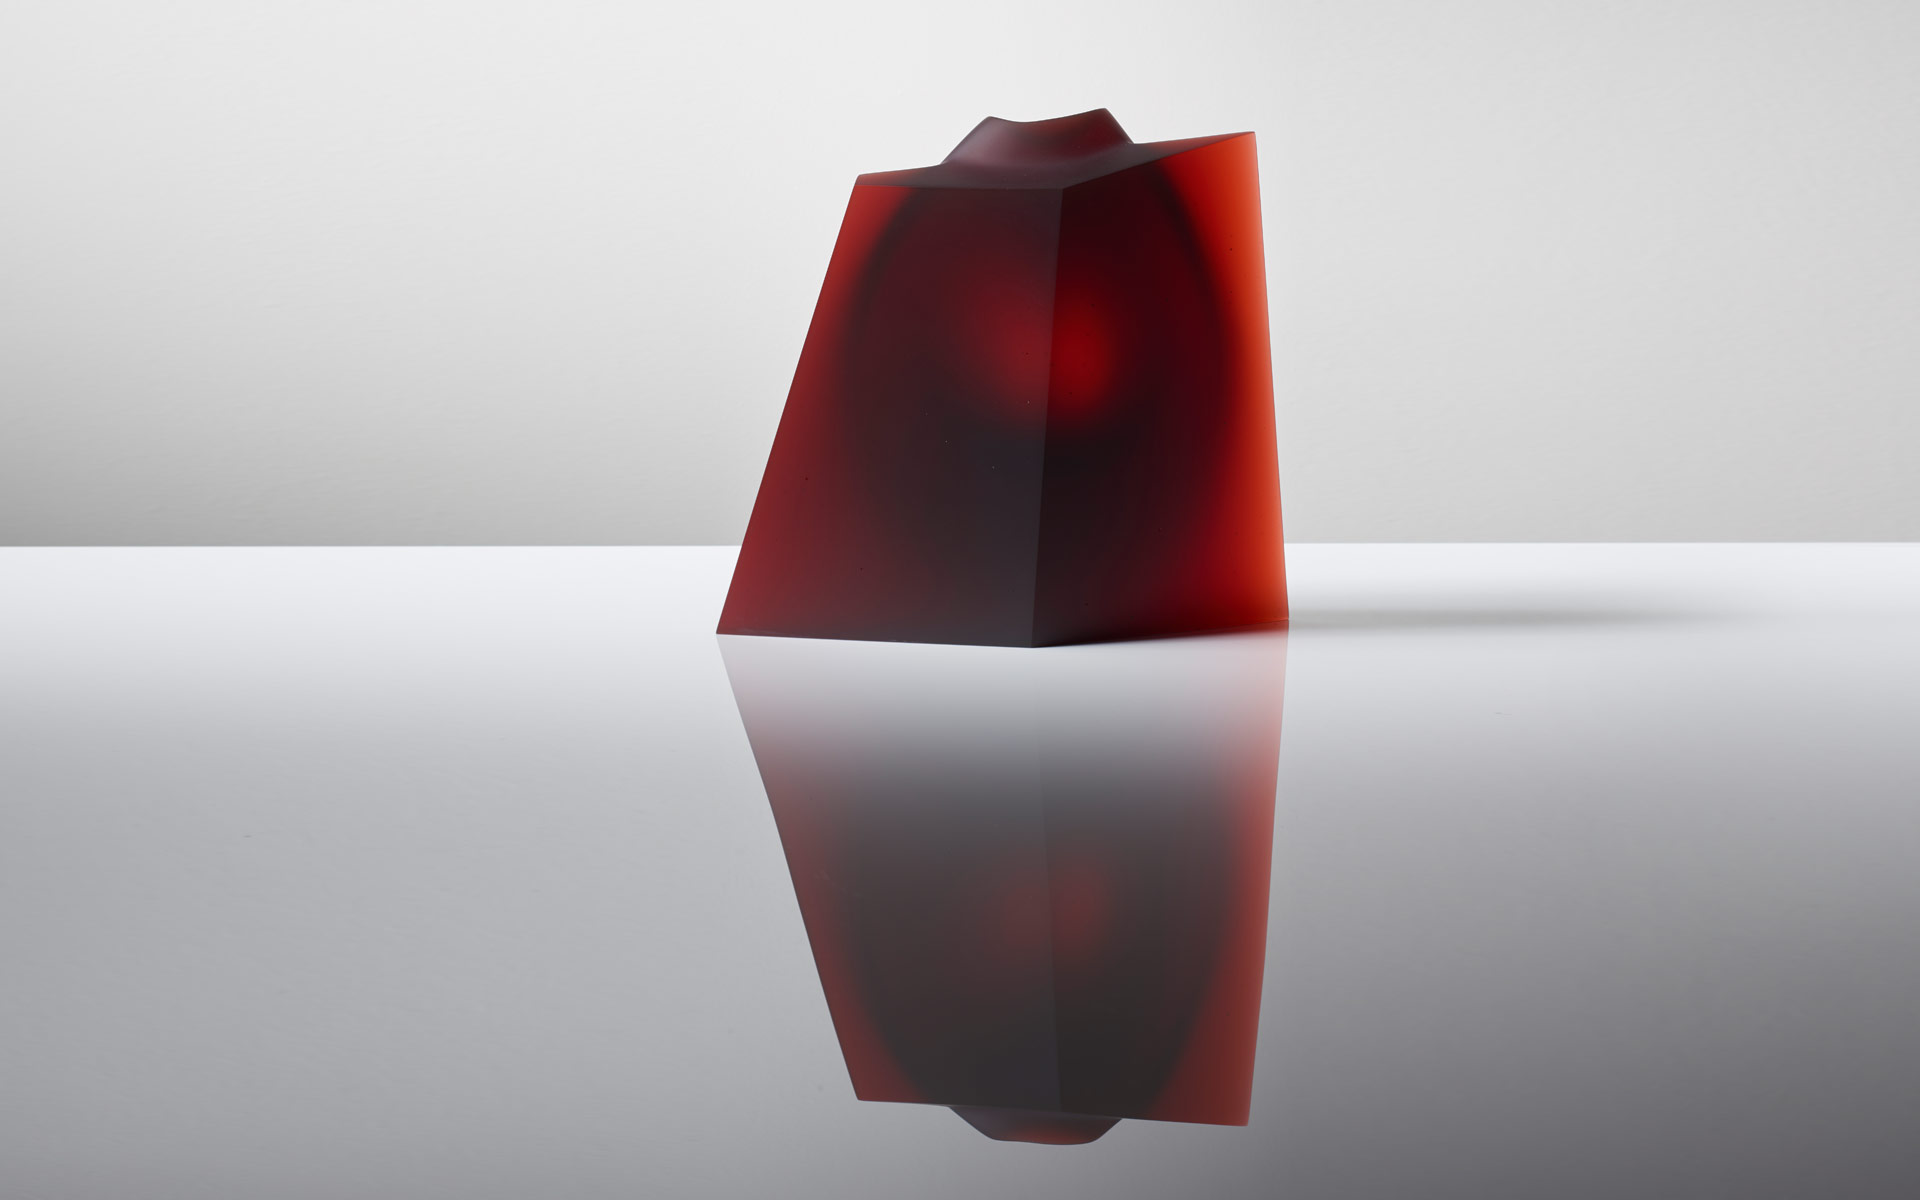 Deep Red Form